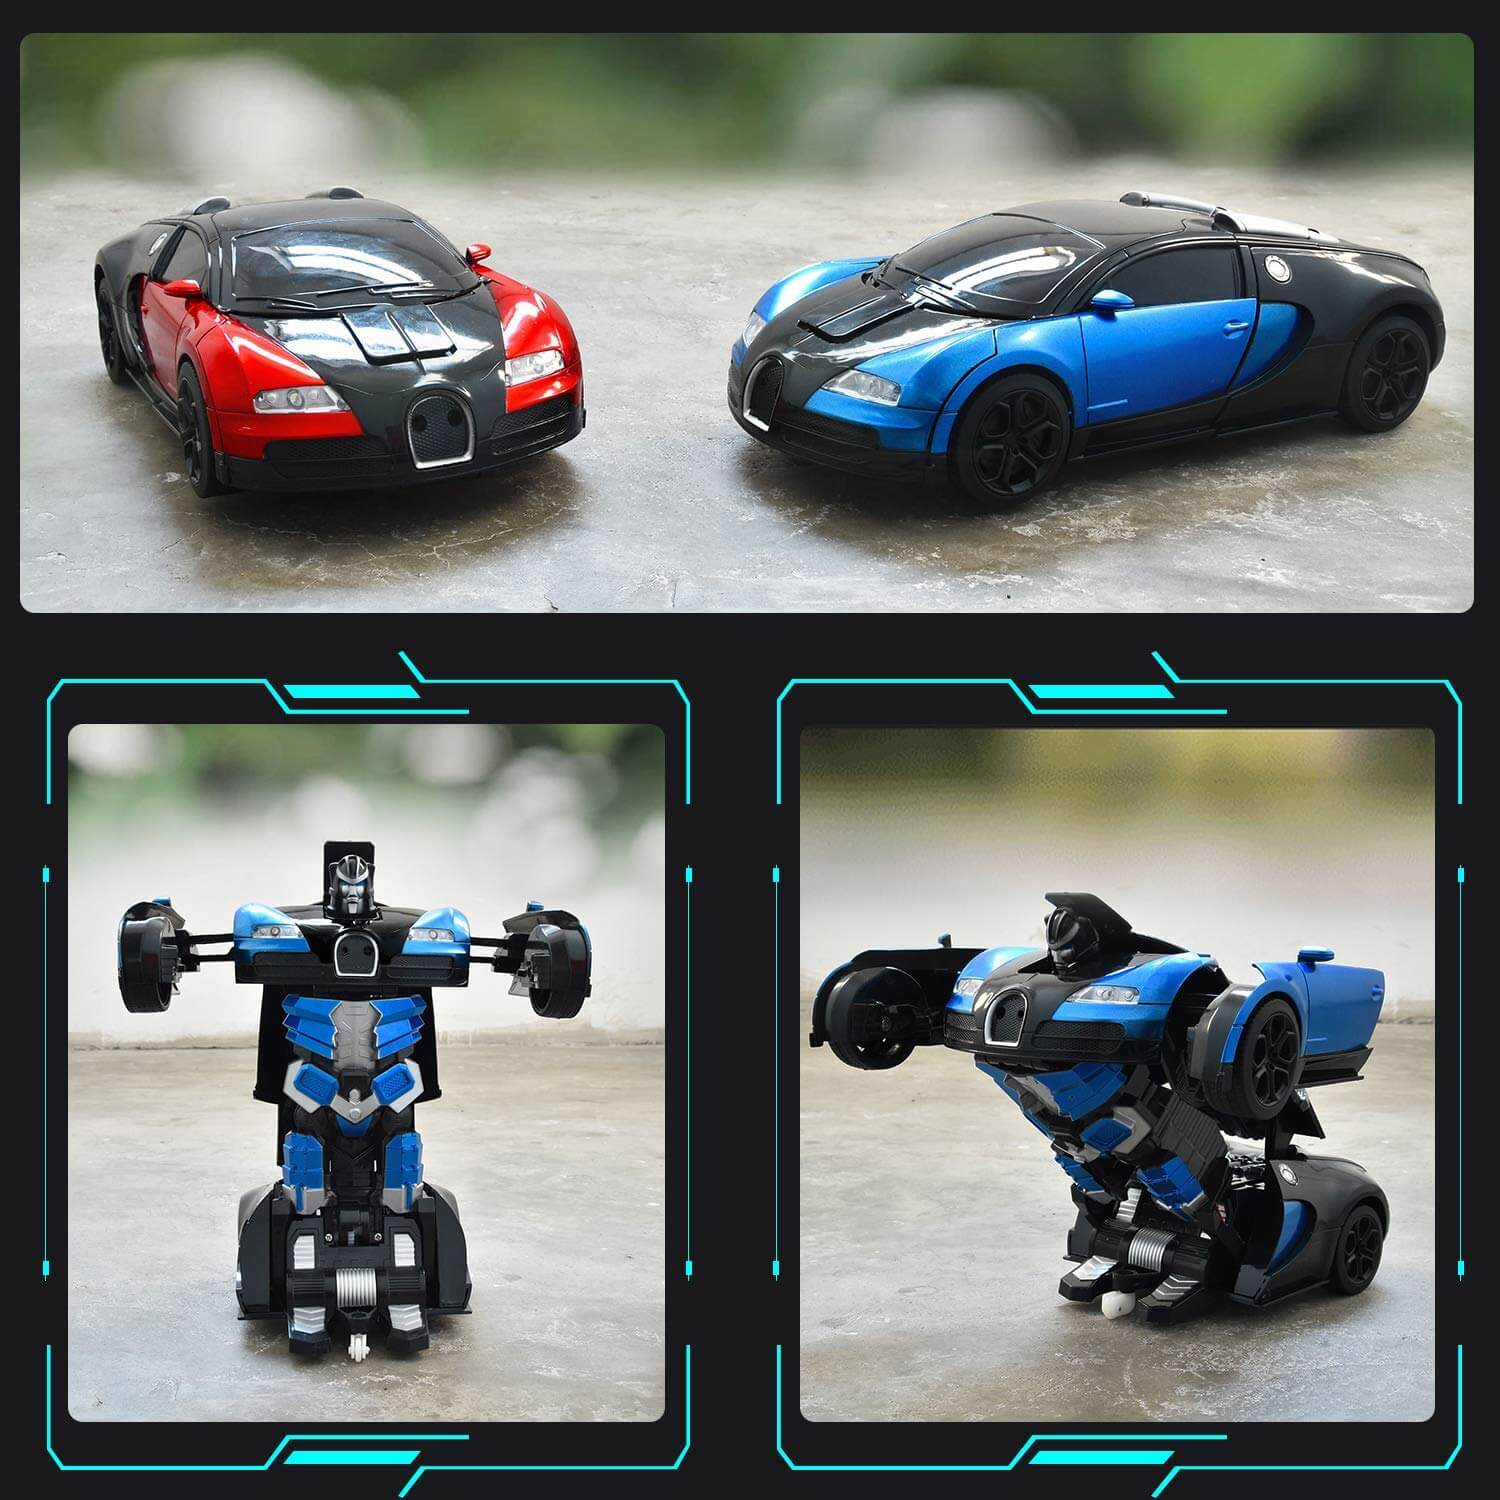 1:14 Remote Control Transformer Robot Car Toys Gesture Sensing RC Car Transforming with Sounds, LED Lights